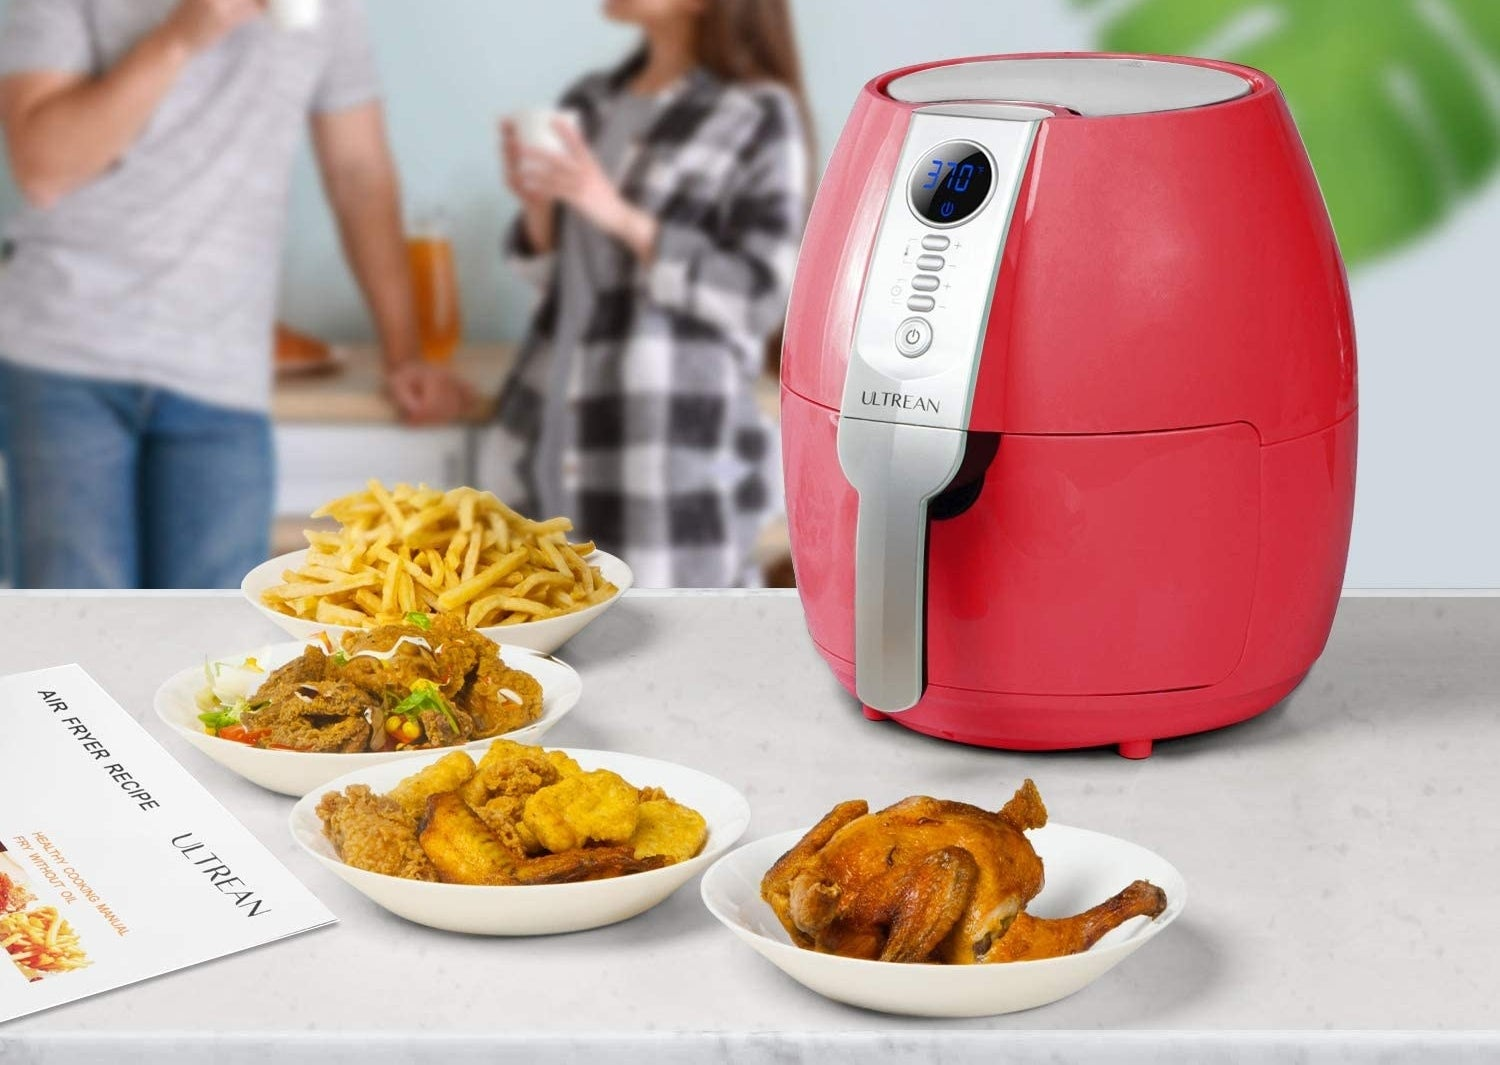 The red air fryer on a counter next to plates of fries, chicken, and other foods